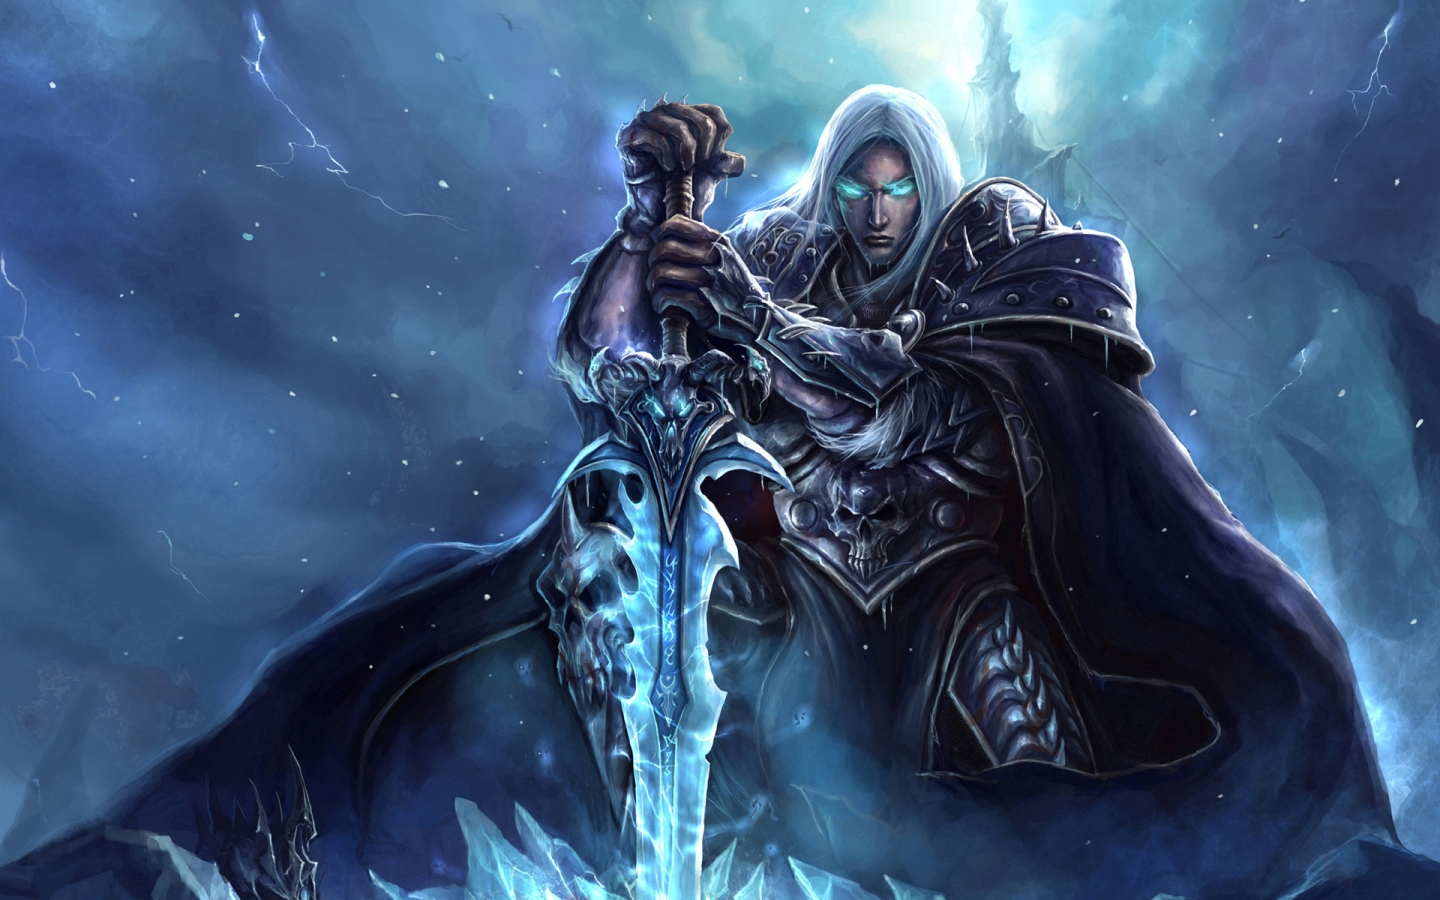 World of Warcraft Lich King Art for 1440 x 900 widescreen resolution